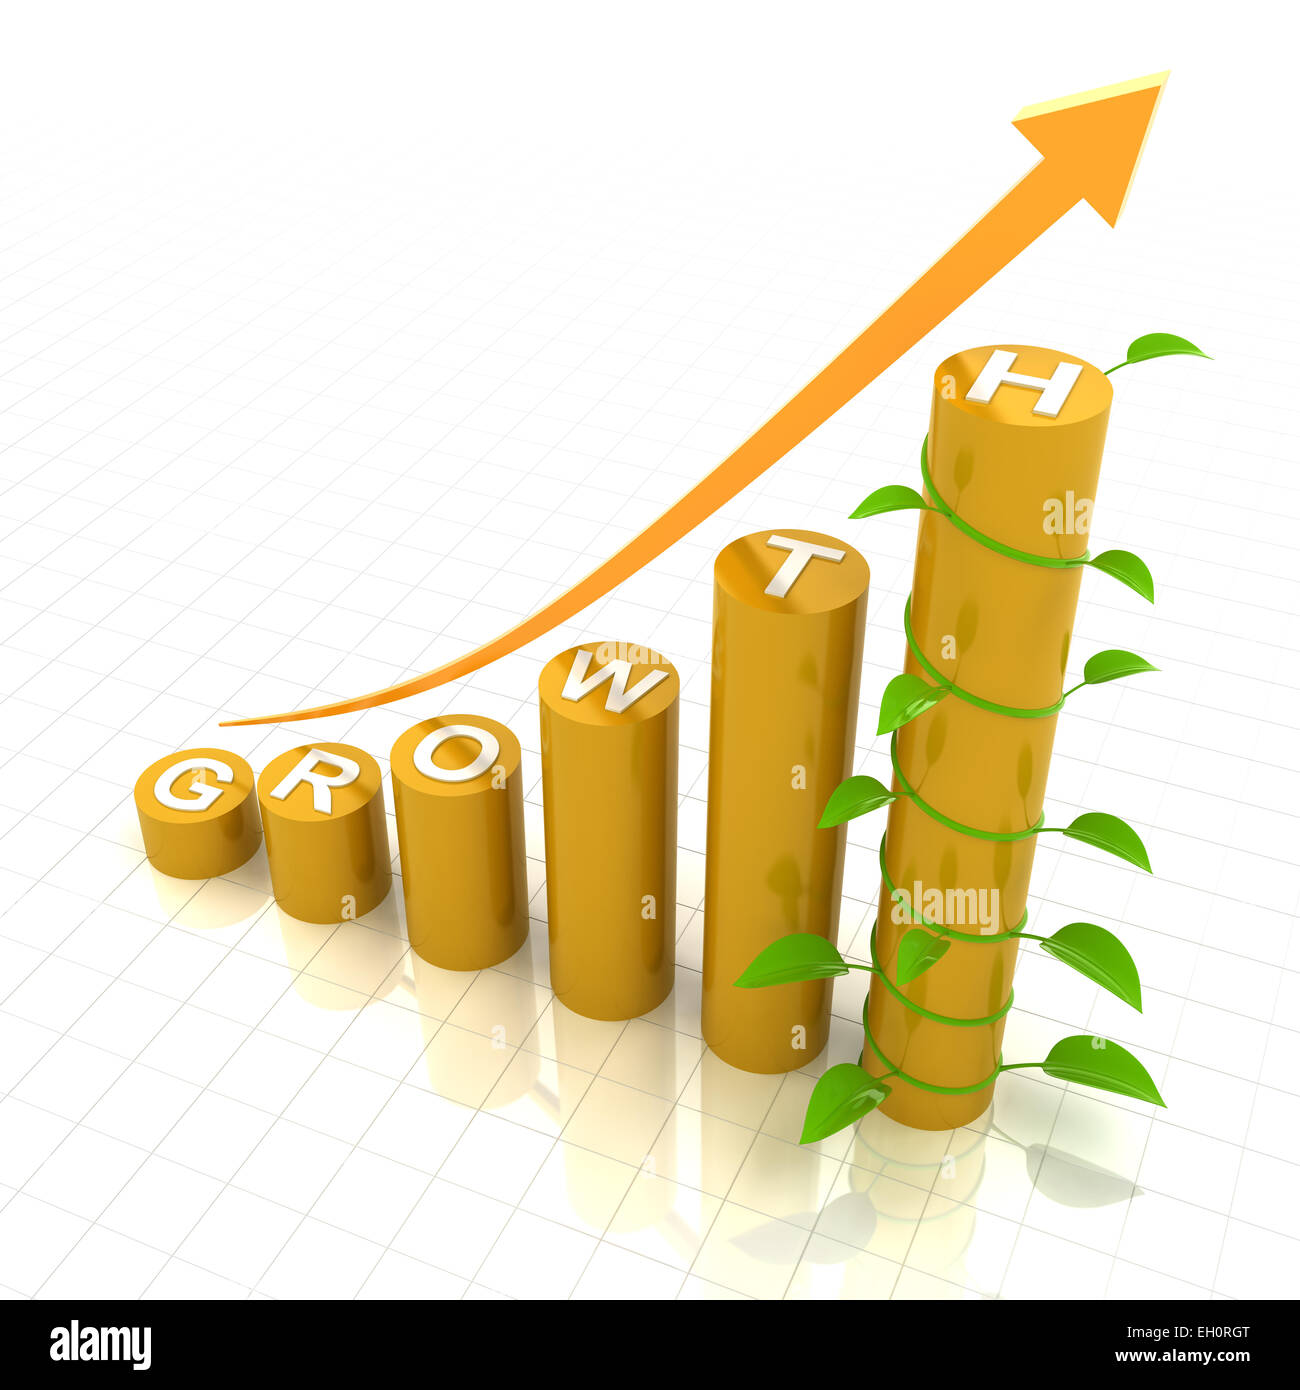 Growth chart with young plant, 3d render - Stock Image